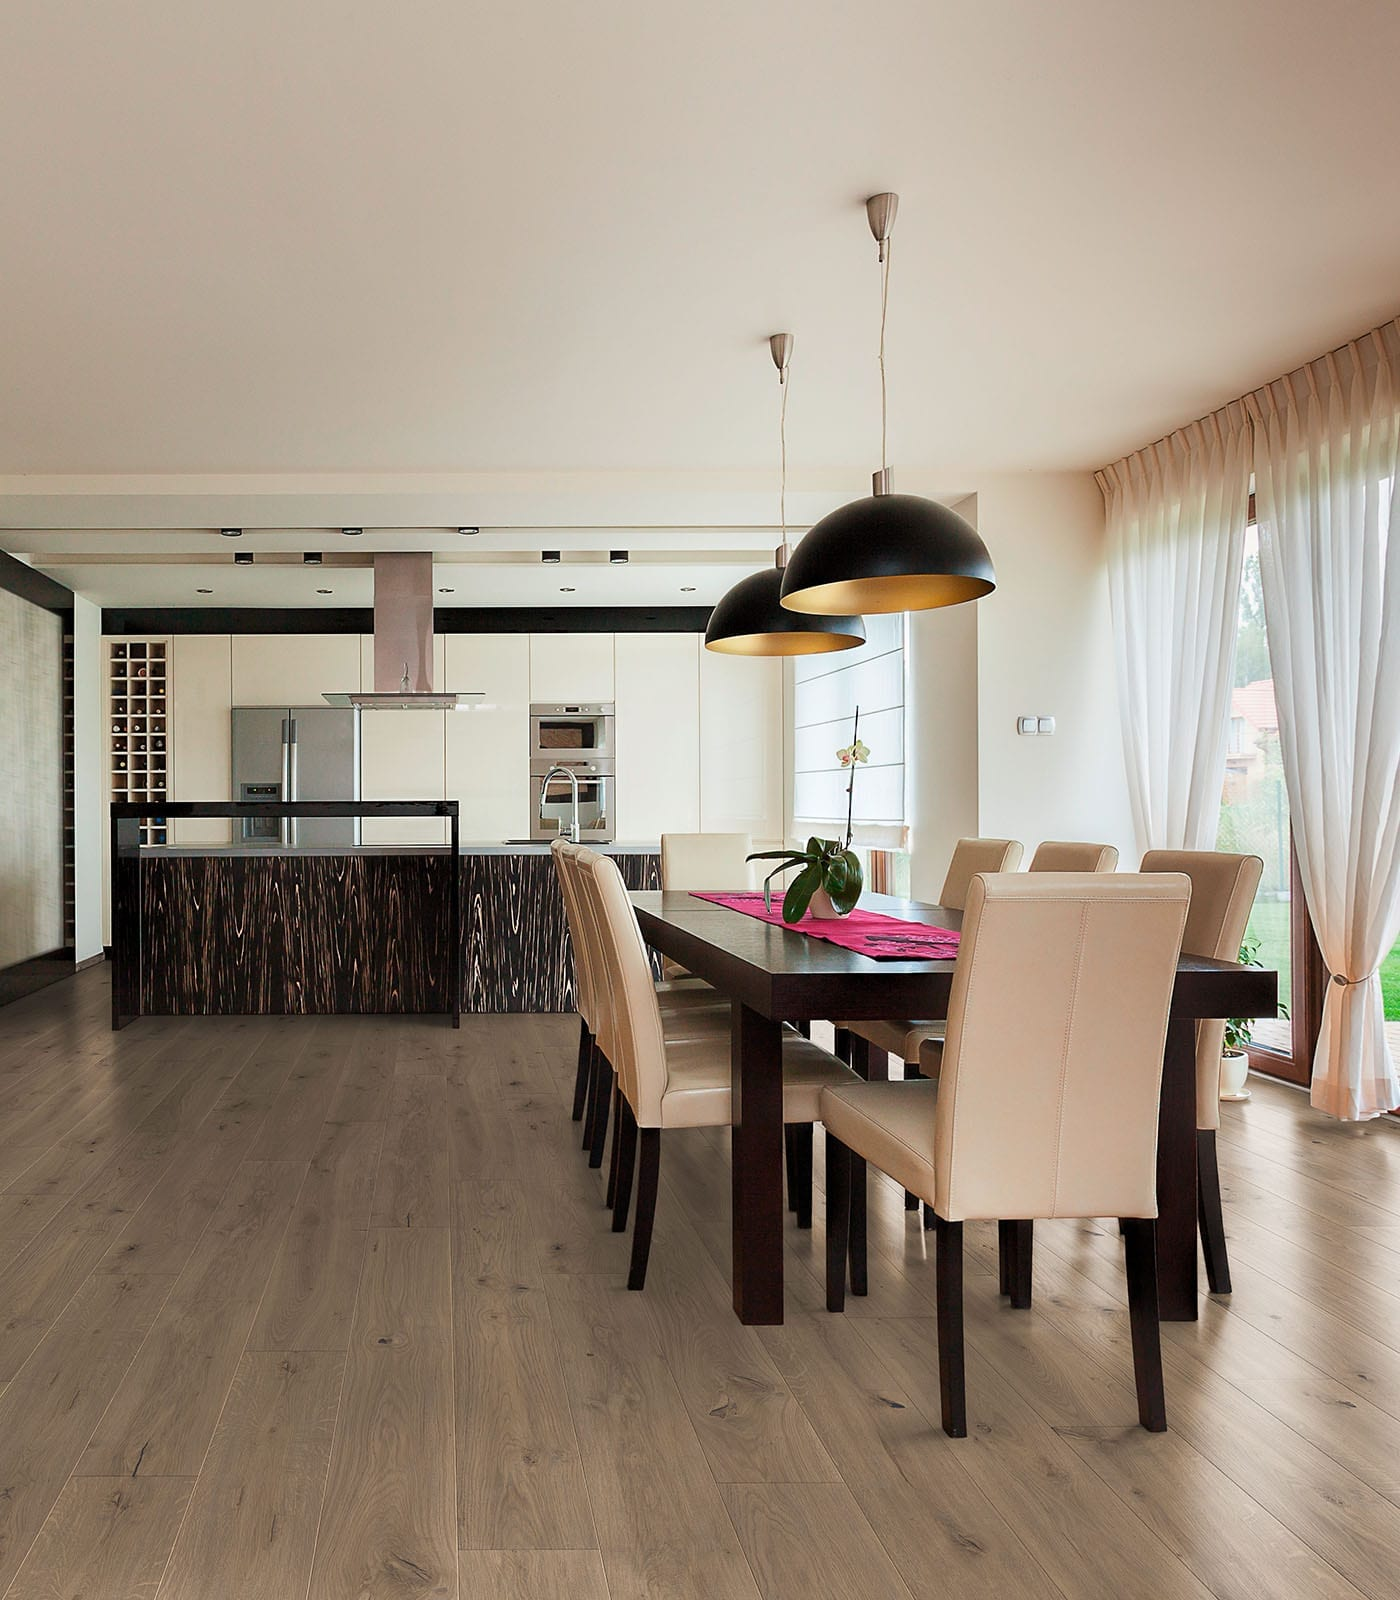 Elounda-European engineered oak flooring